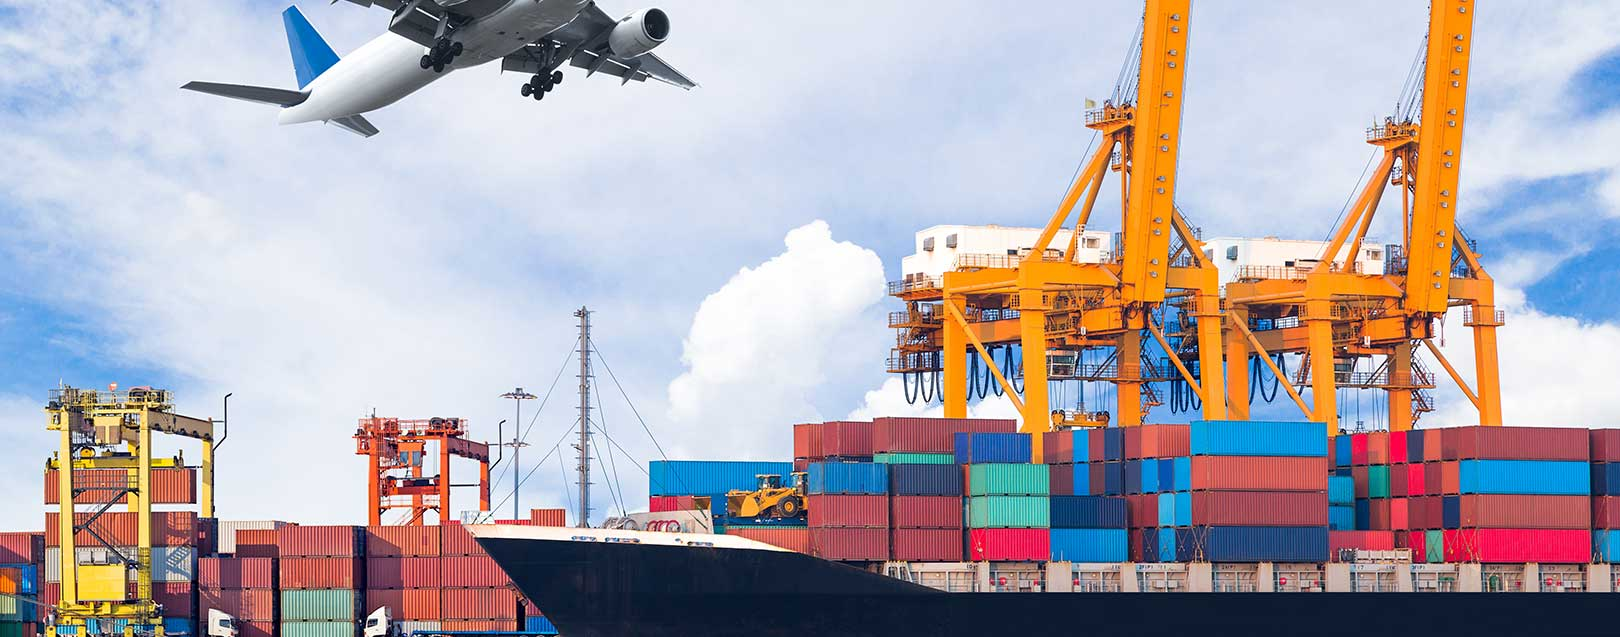 Exports from SEZs grew 18% in February 2018